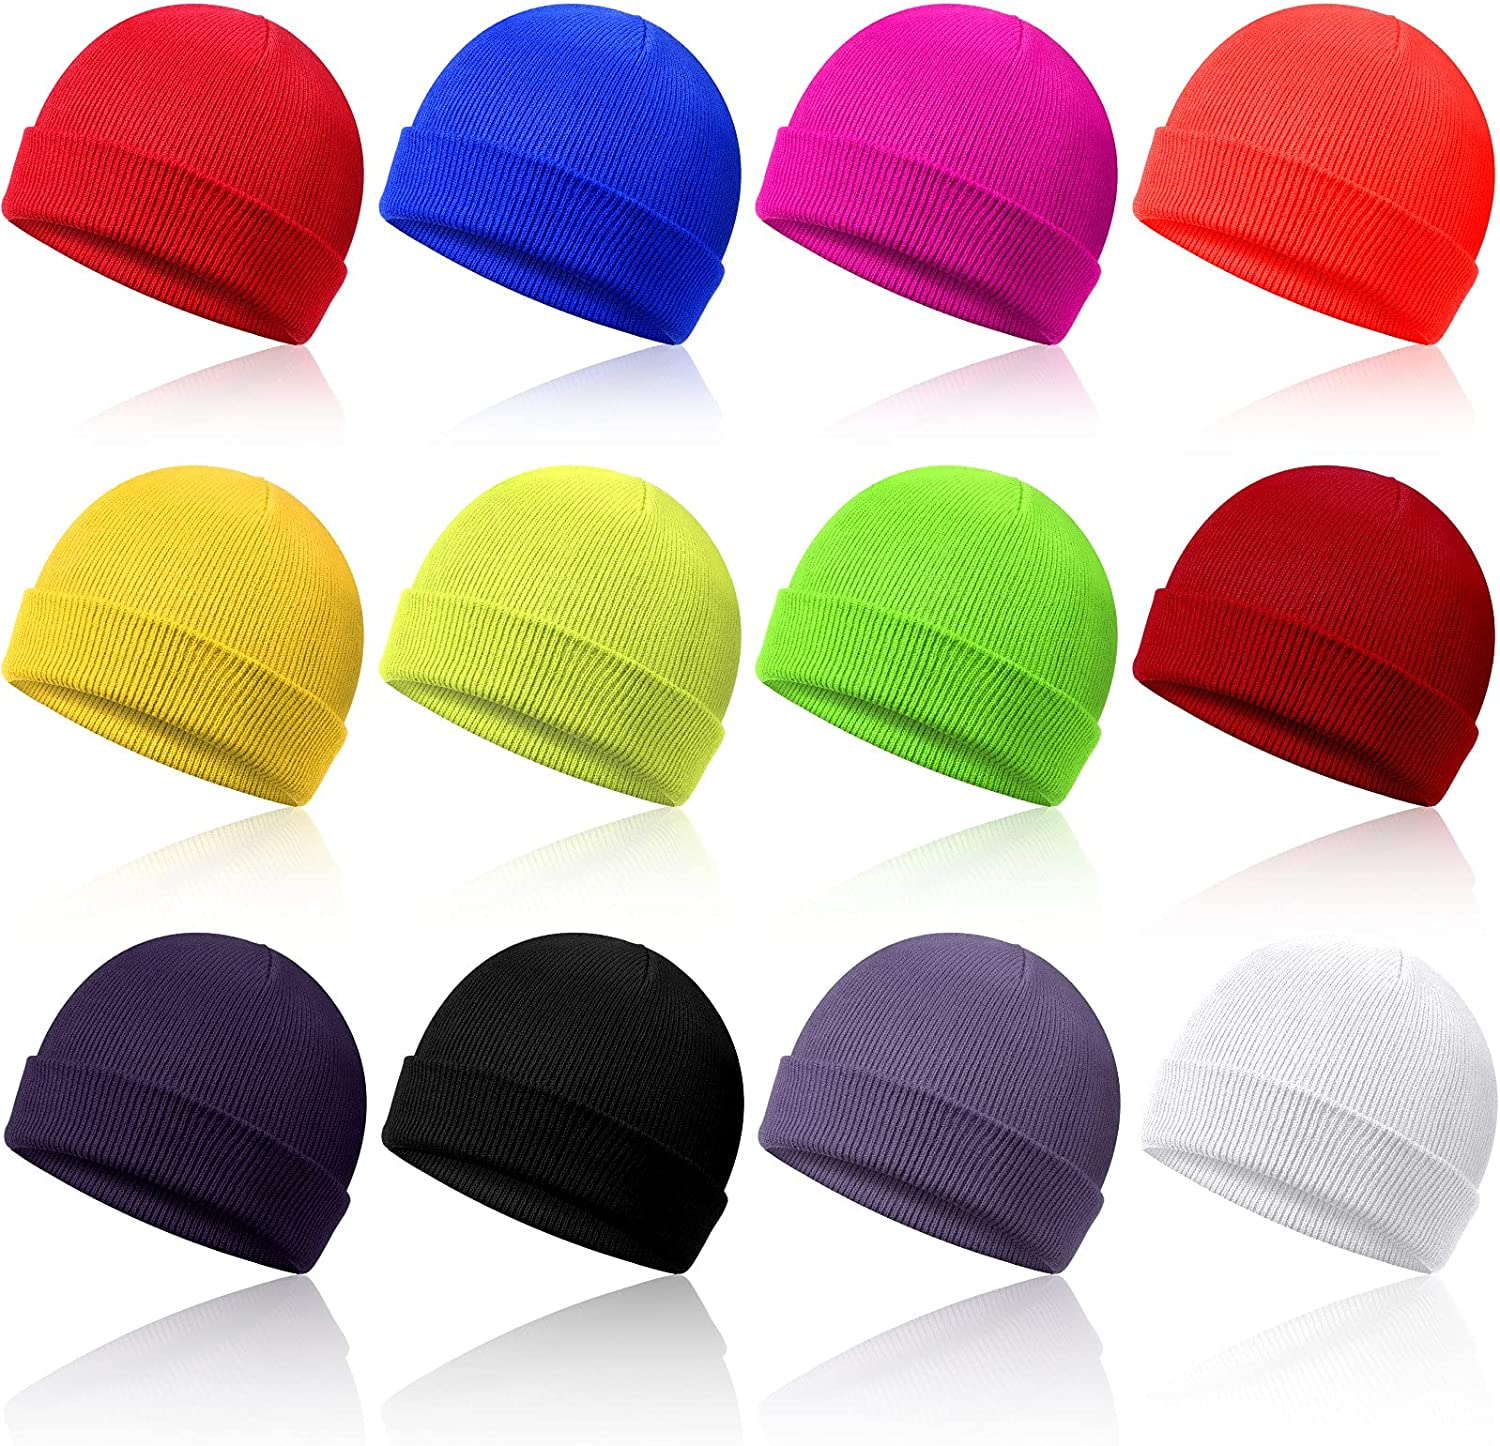 12 Pieces Toddler Beanie for Baby Kids Boys Girls Beanies Winter Knitted Skull Caps Hats, 12 Colors : Sports & Outdoors